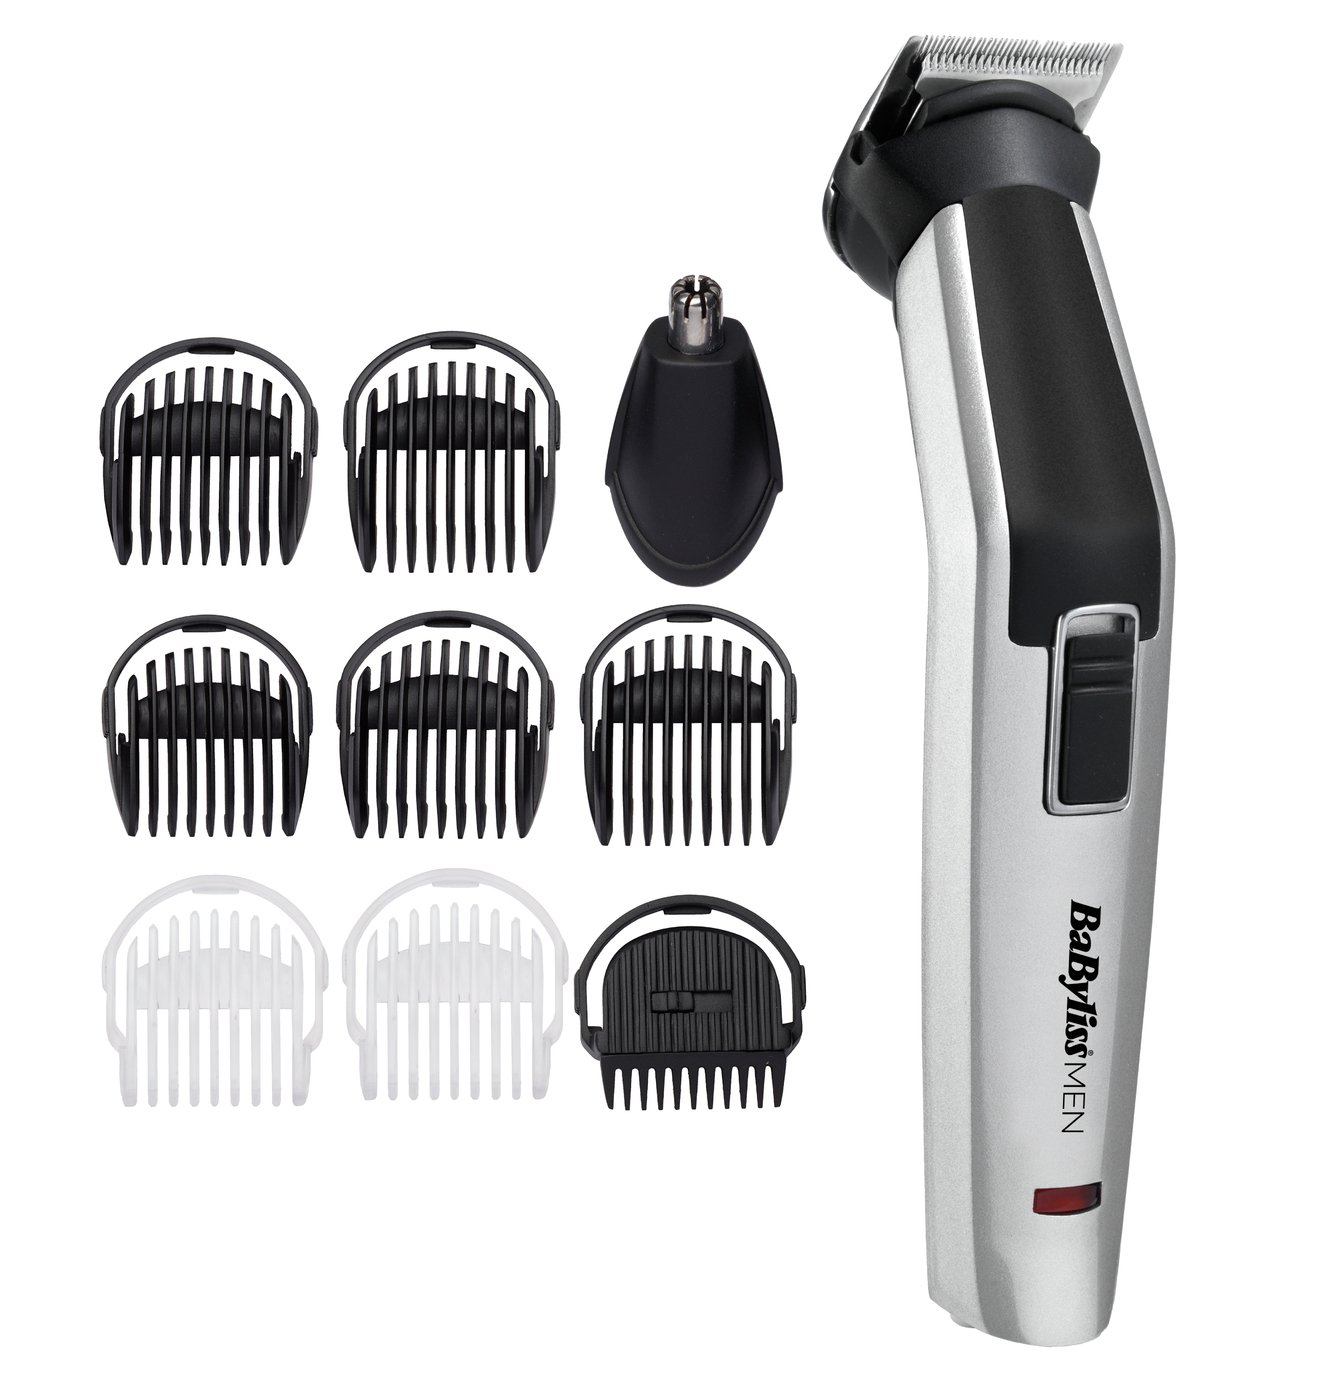 BaByliss for Men 10 in 1 Body Groomer and Hair Clipper 7255U